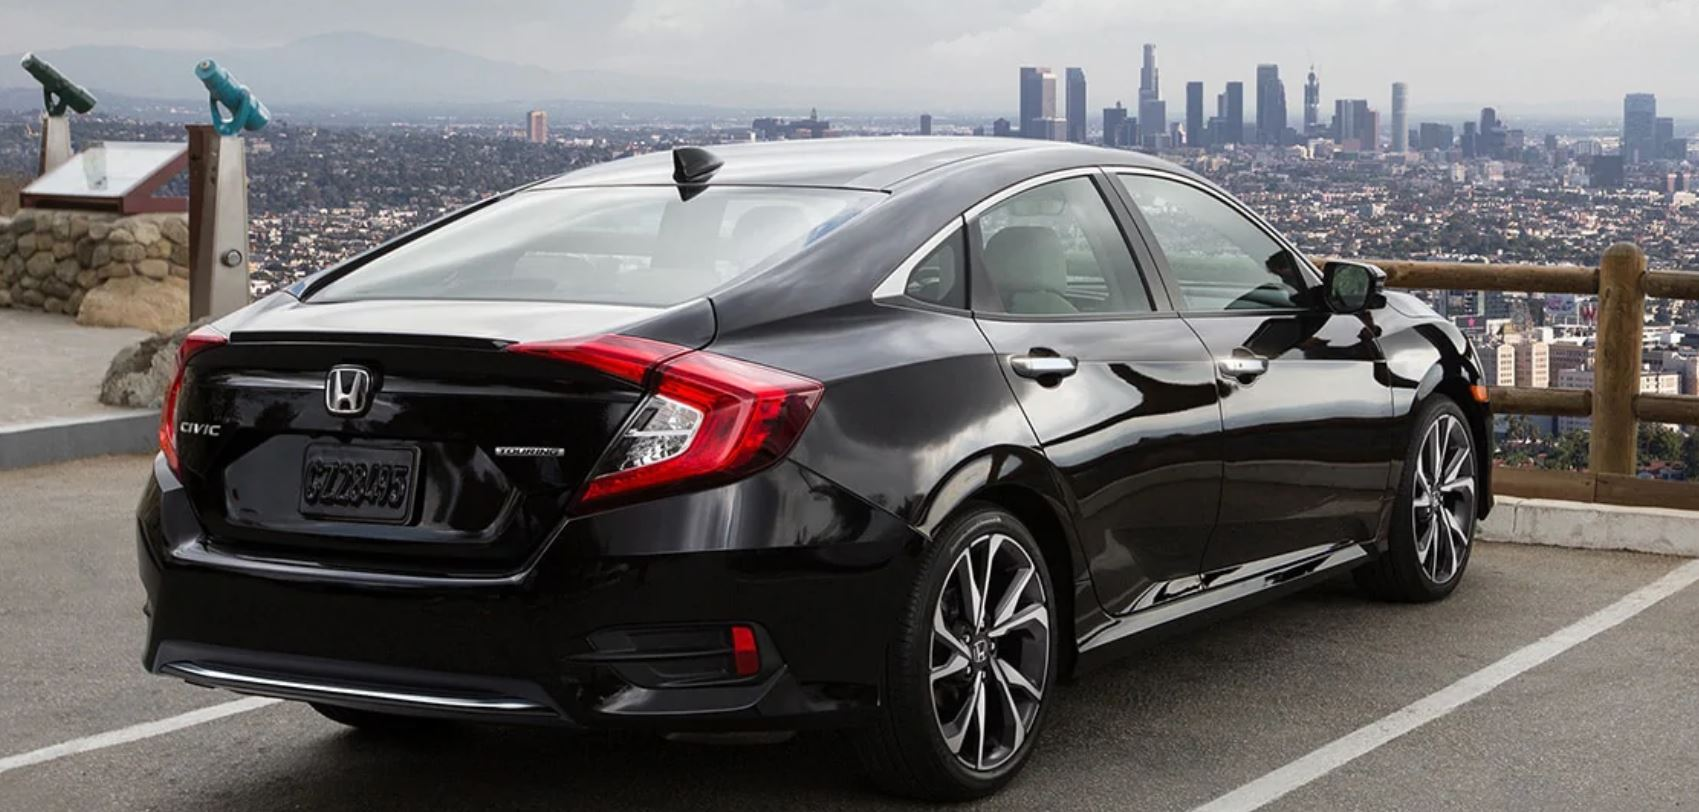 2020 honda civic leasing near manassas va honda of chantilly